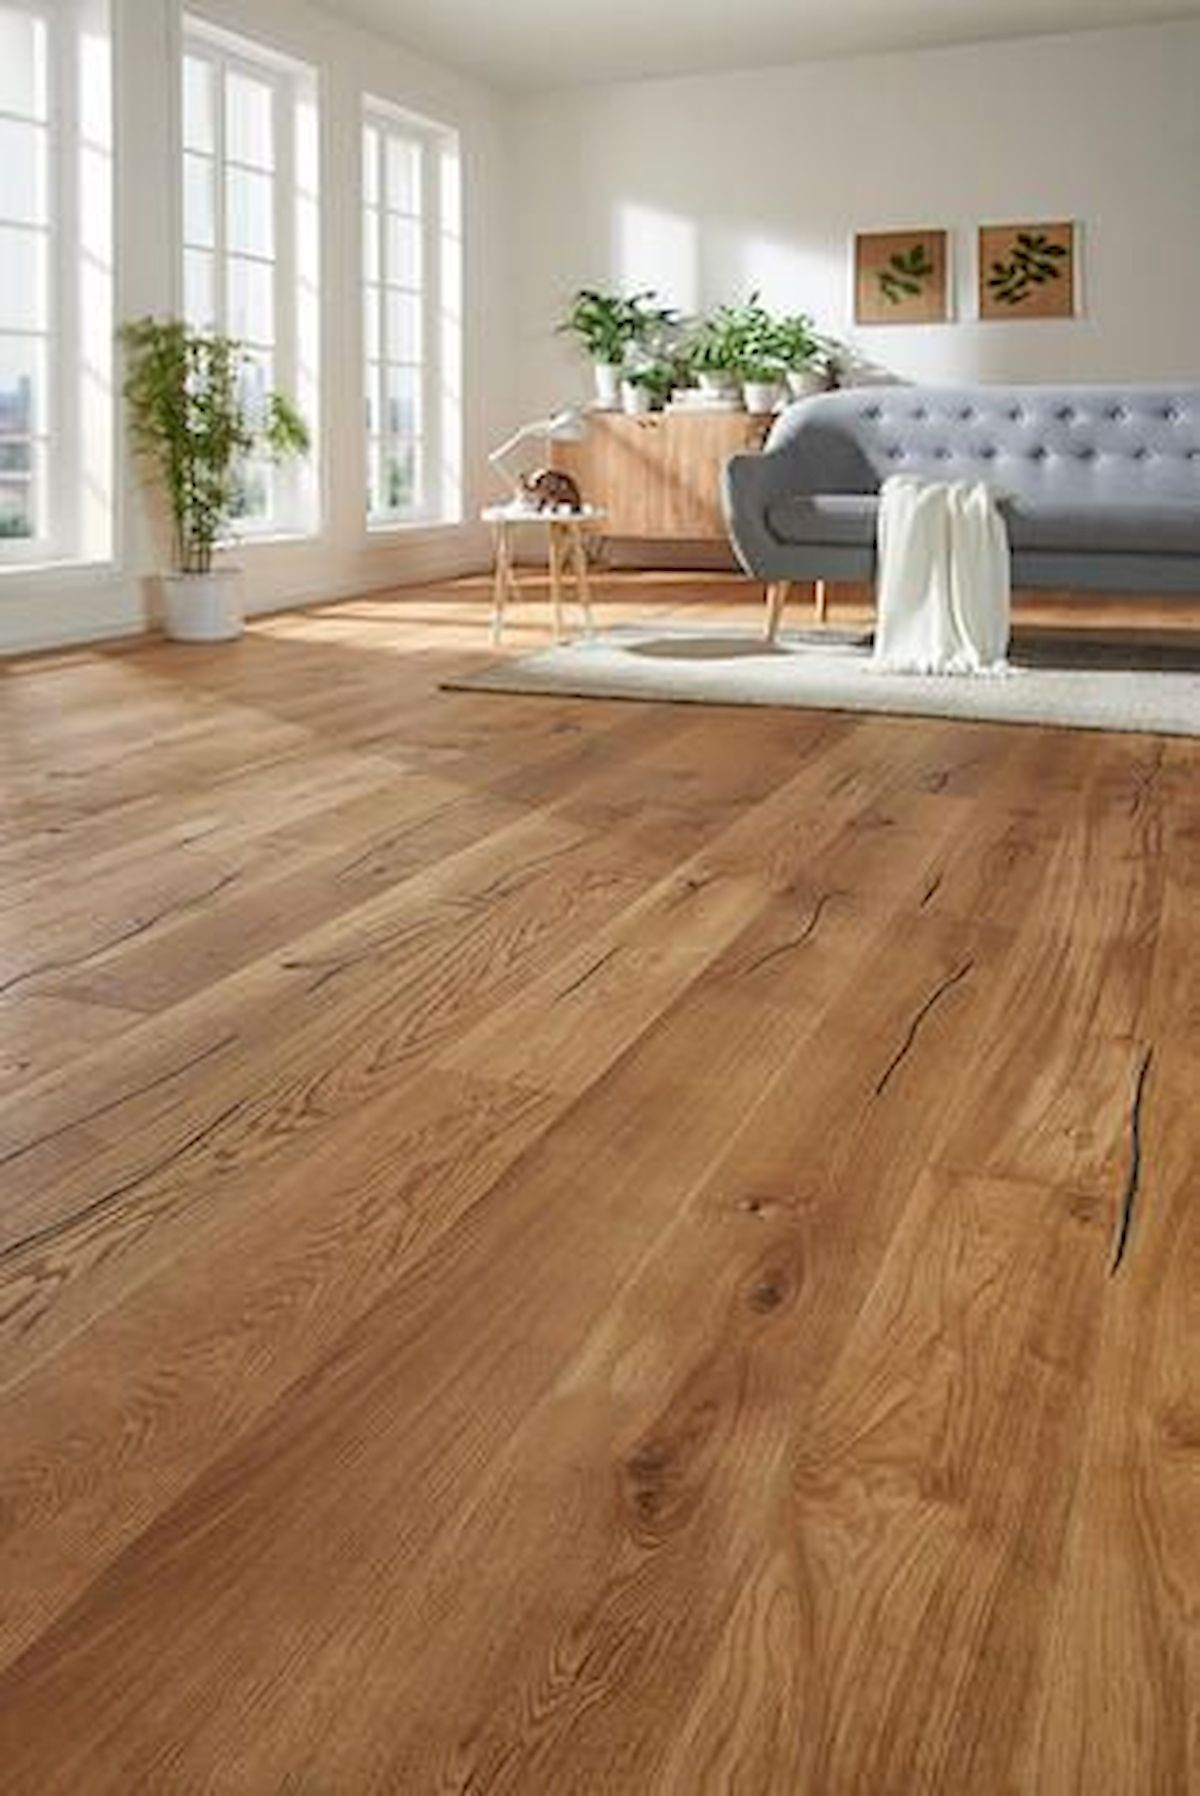 Pin By Celine Itchon On Living Farmhouse Flooring Wood Floor Colors House Flooring